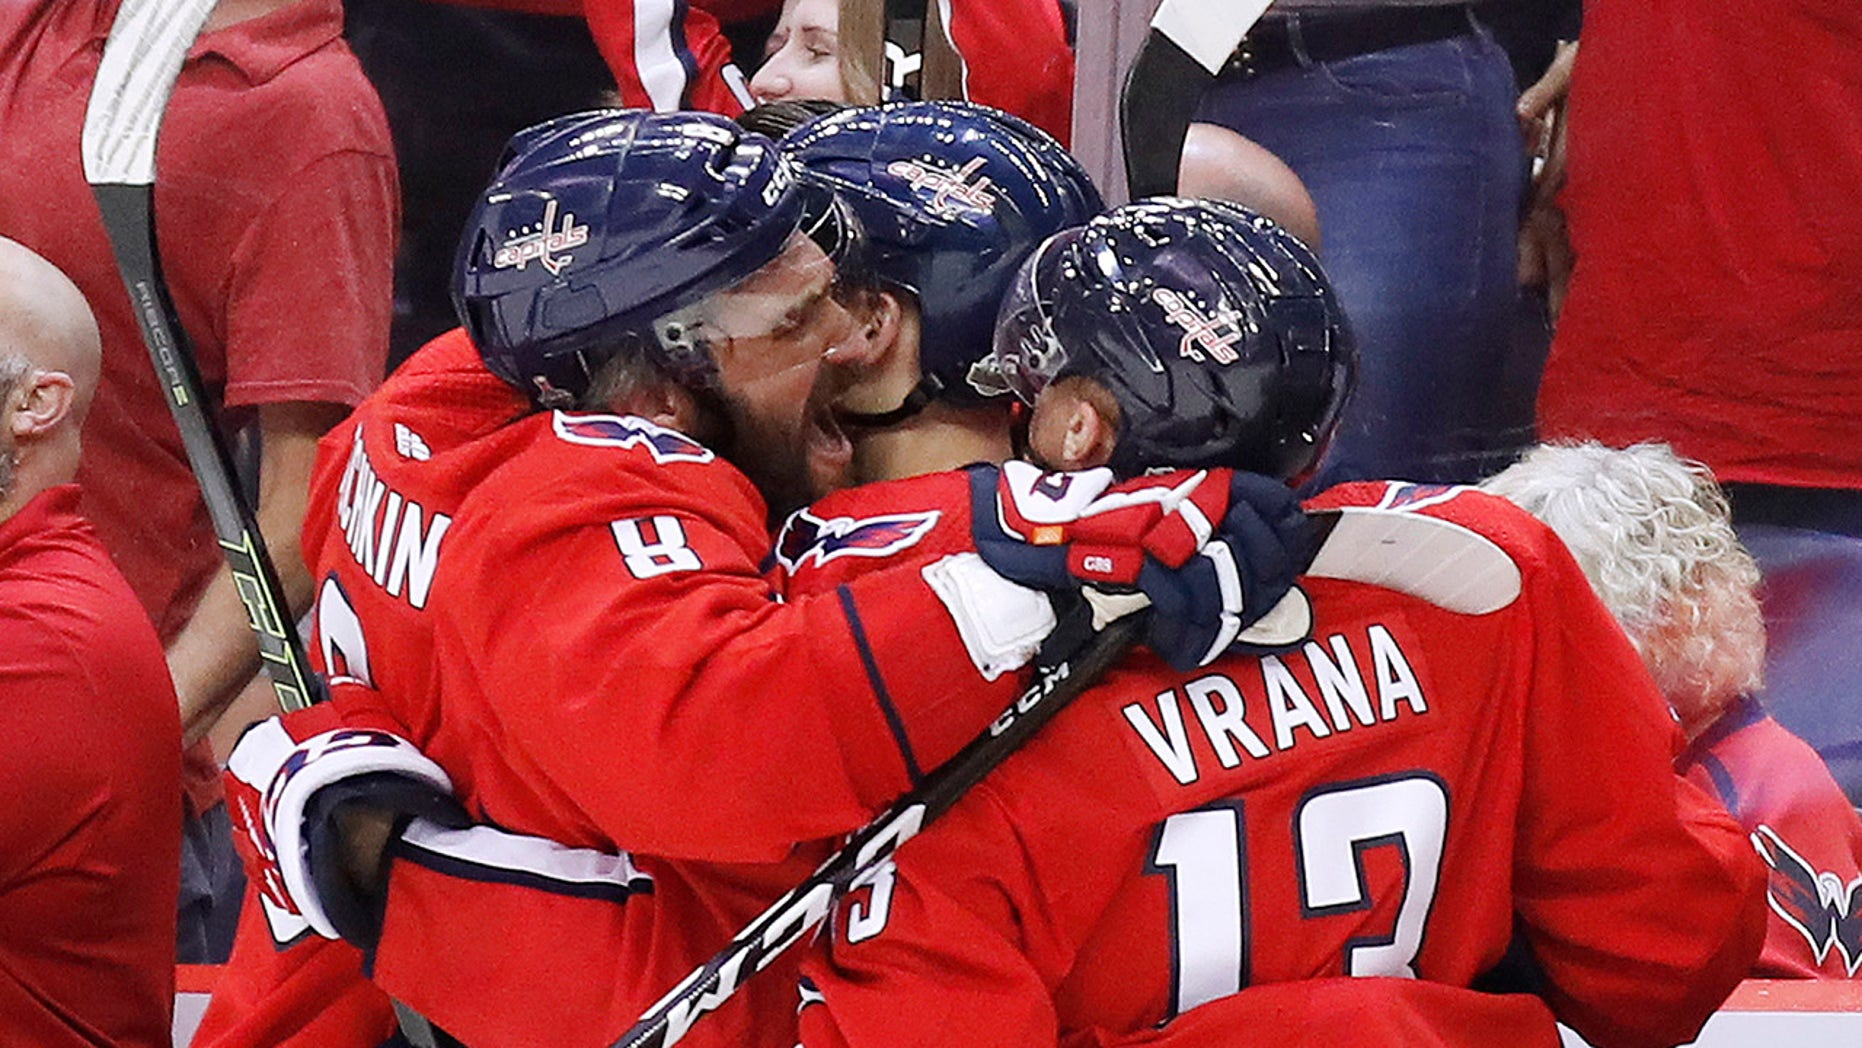 Washington Capitals forward Alex Ovechkin, left, and Washington Capitals forward Jakub Vrana, right, celebrate one of their team's goals against the Vegas Golden Knights during the third period.